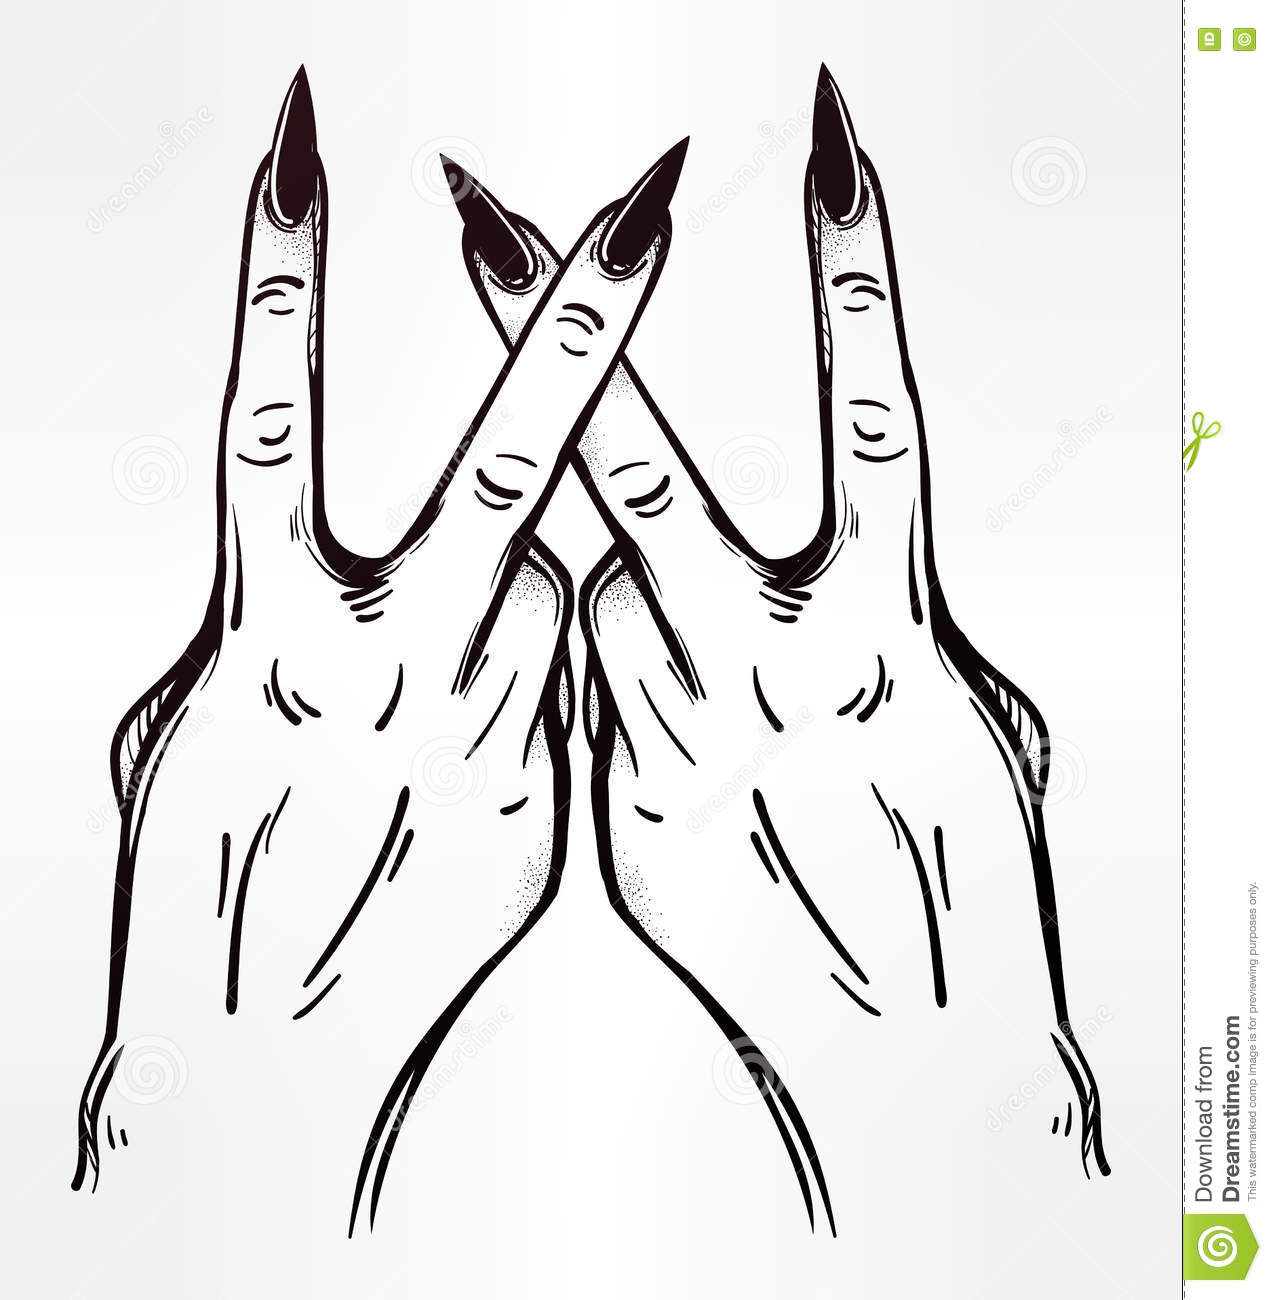 V Sign Hand Flash Tattoo Fingers Showing Two Stock Vector